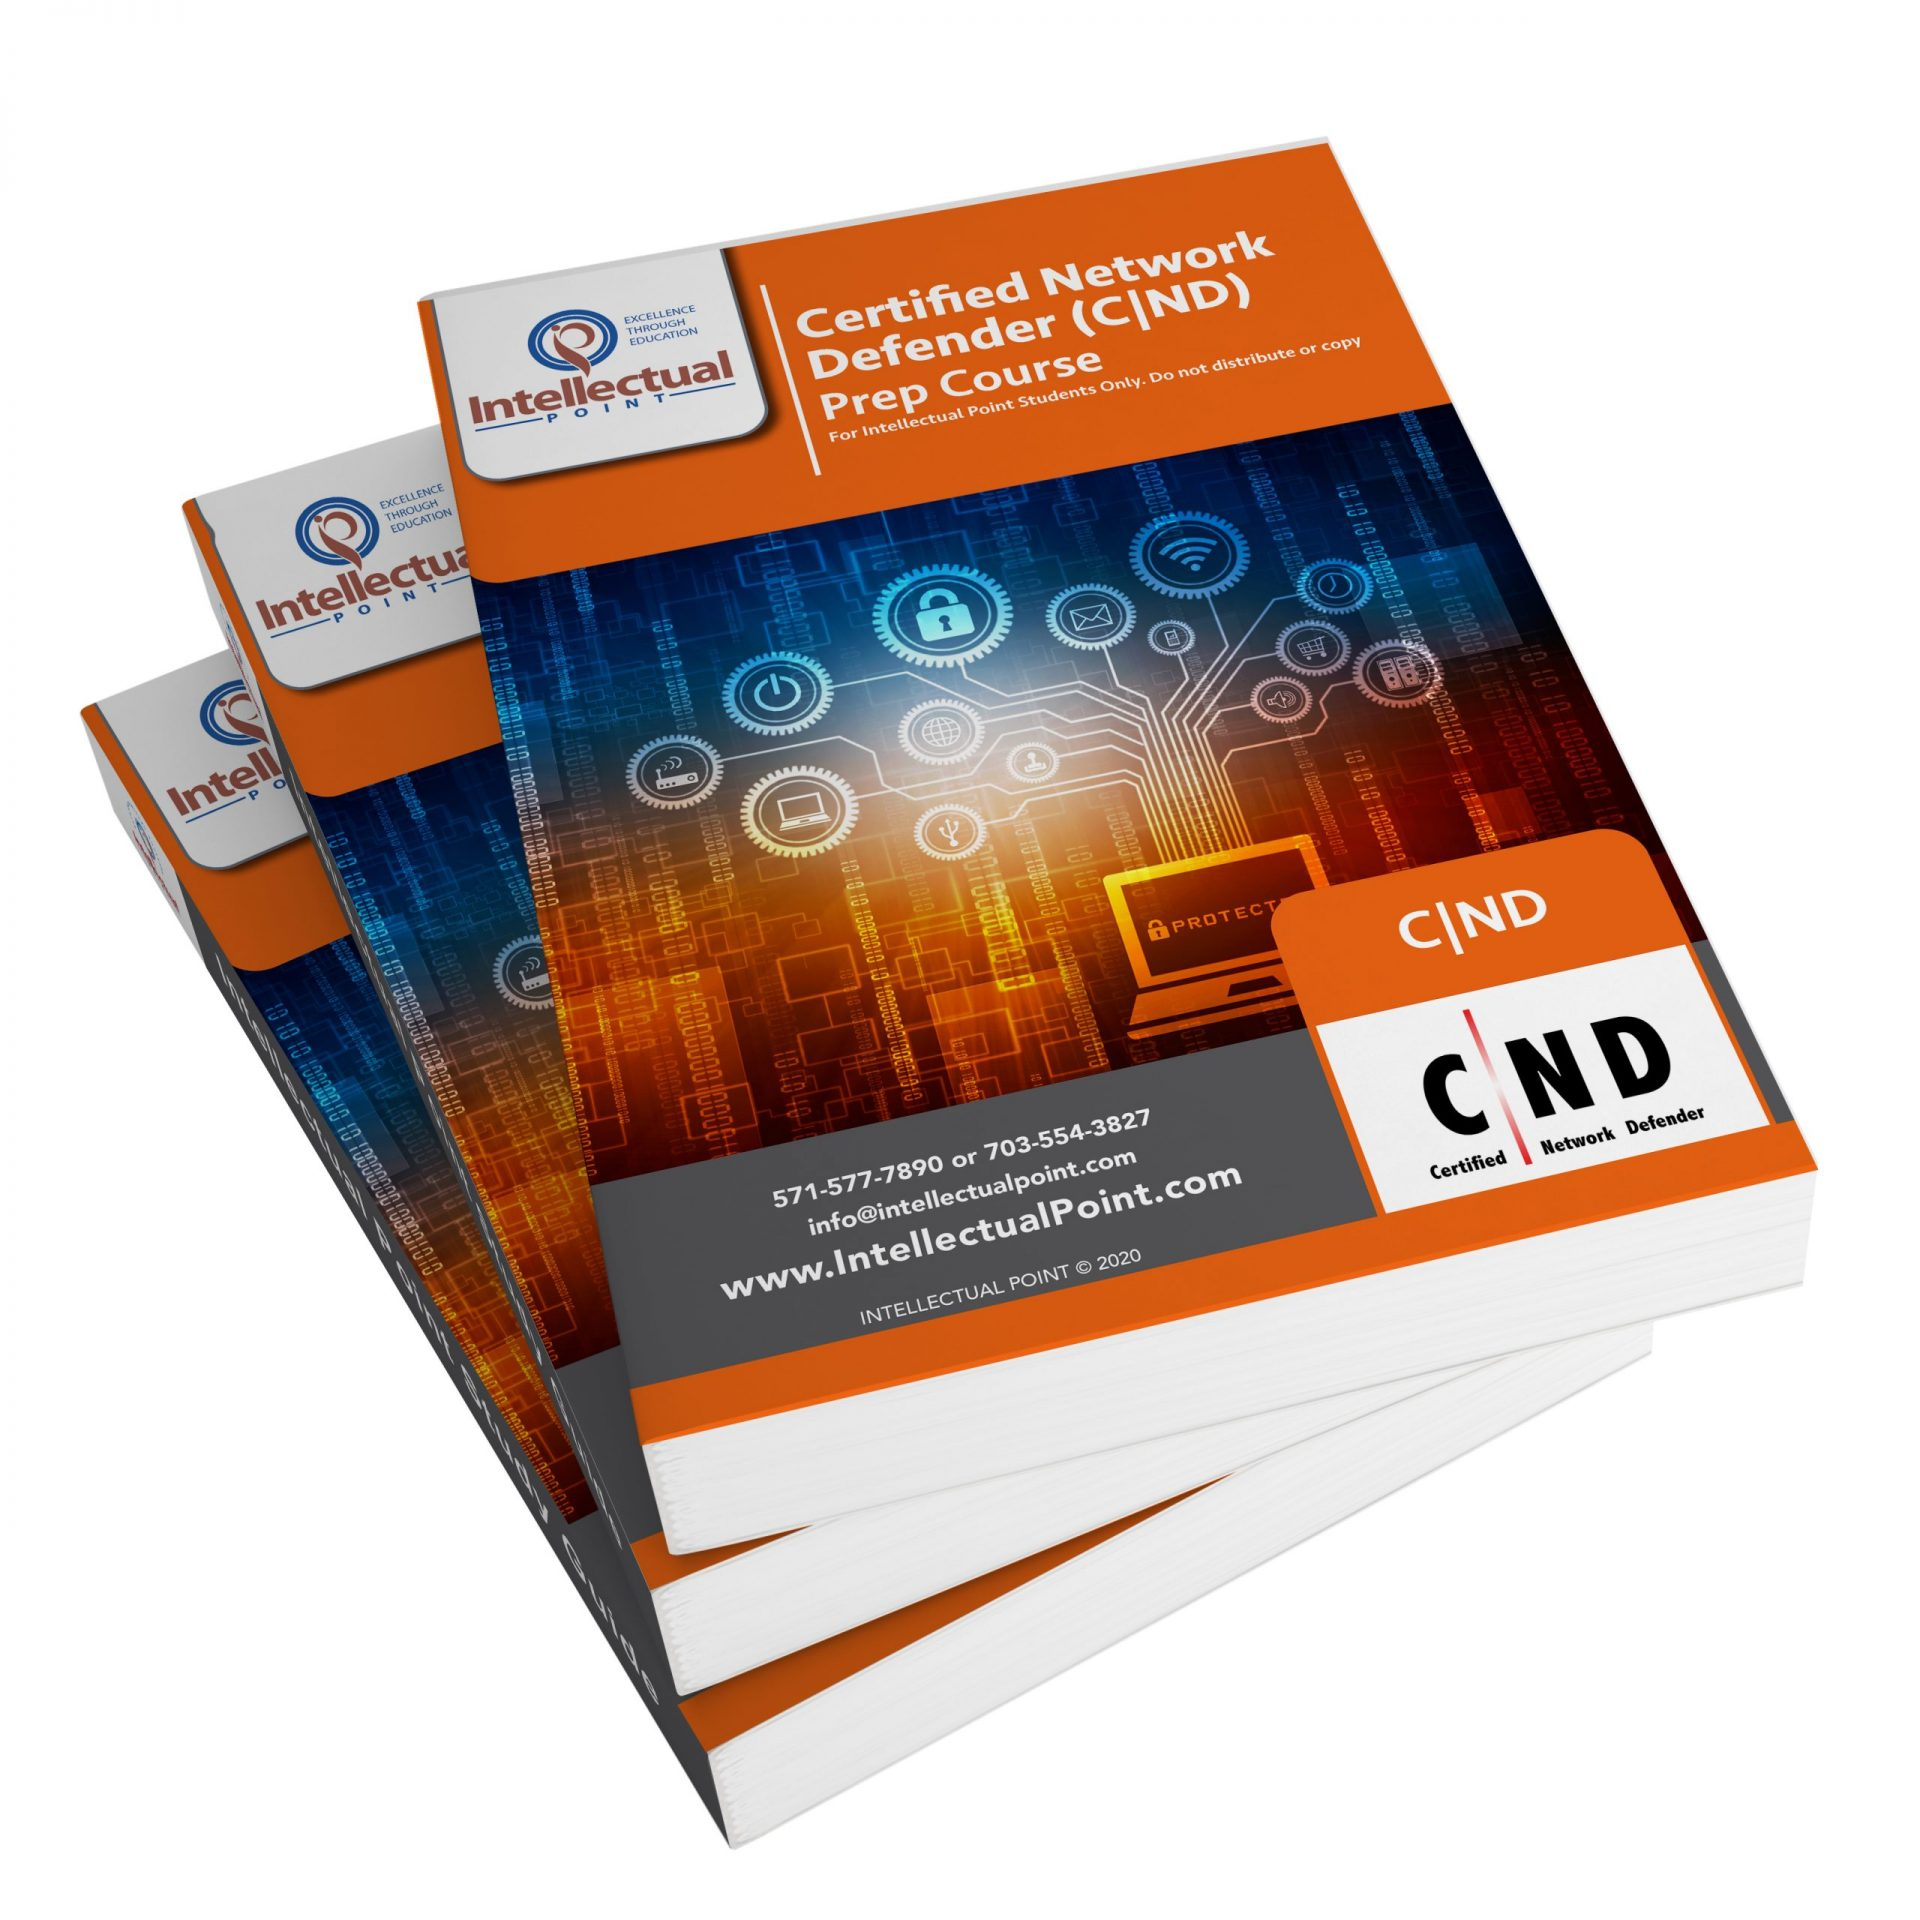 Certified Network Defender (CND) Study Guide